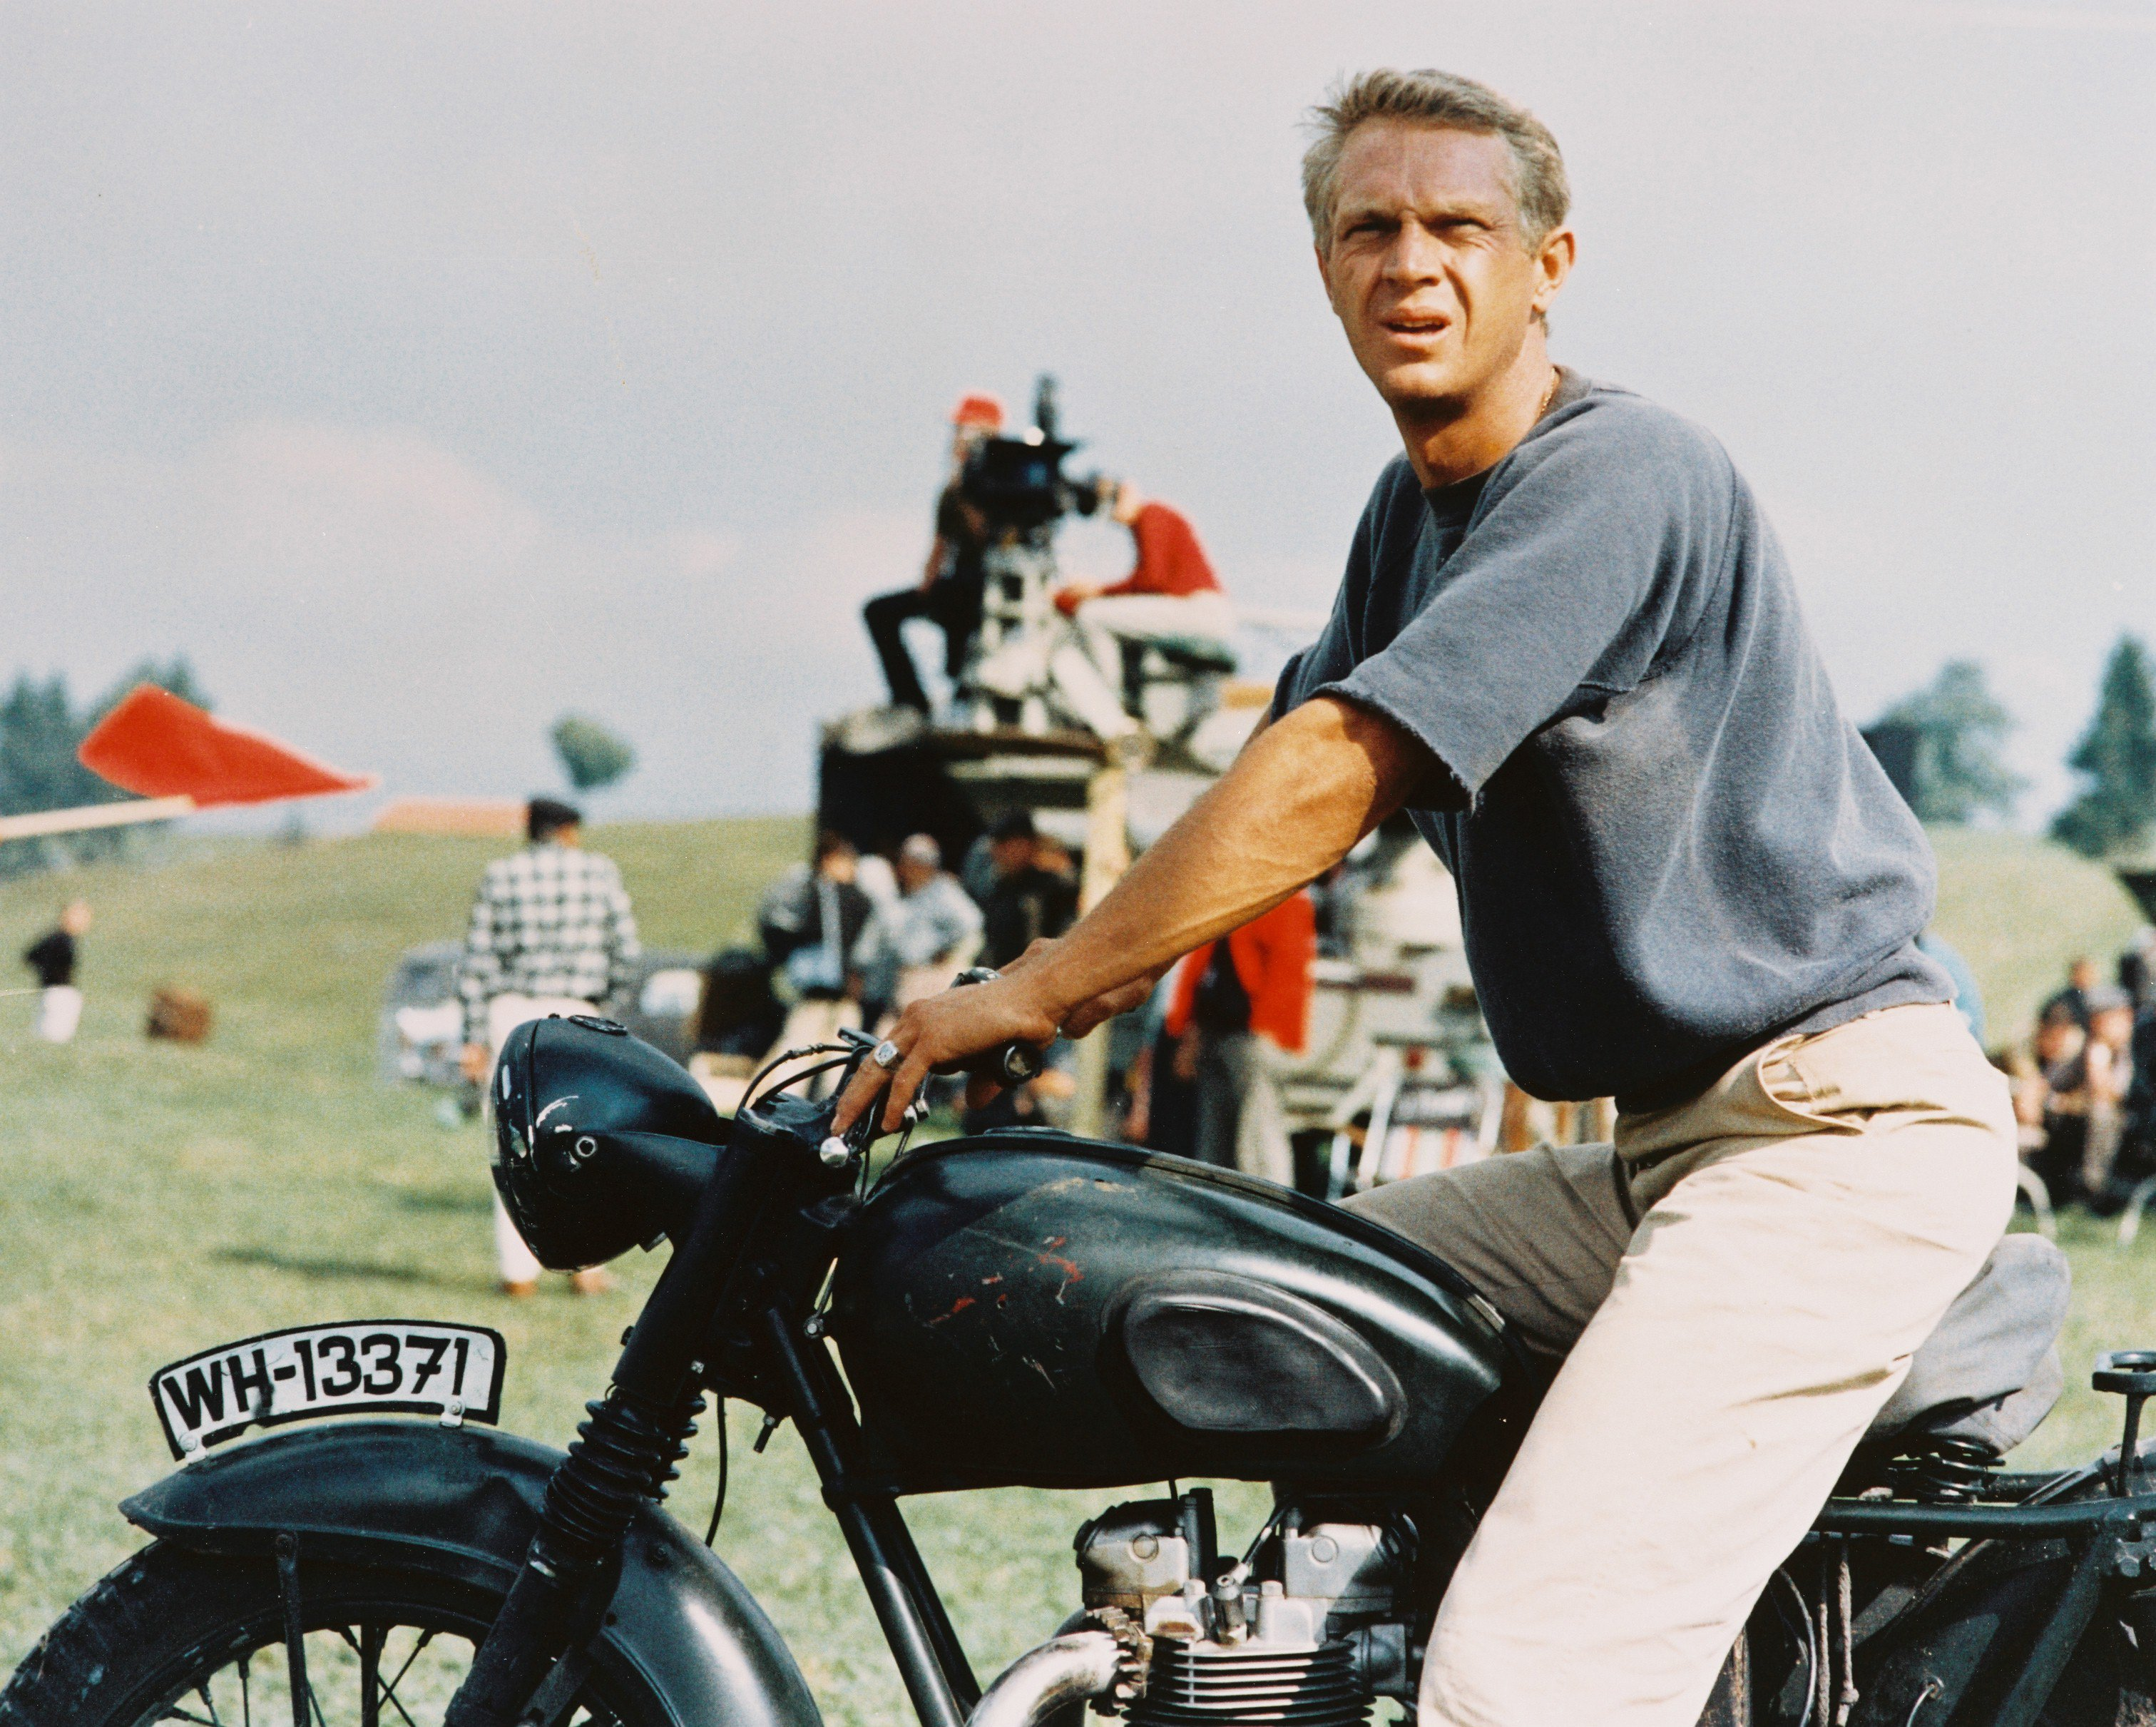 Steve McQueen sitting astride a motorcycle in a publicity still issued for the film, 'The Great Escape', 1963. The prisoner of war drama, directed by John Sturges (1910-1992), starred McQueen as 'Captain Virgil 'The Cooler King' Hilts'.   Source: Getty Images